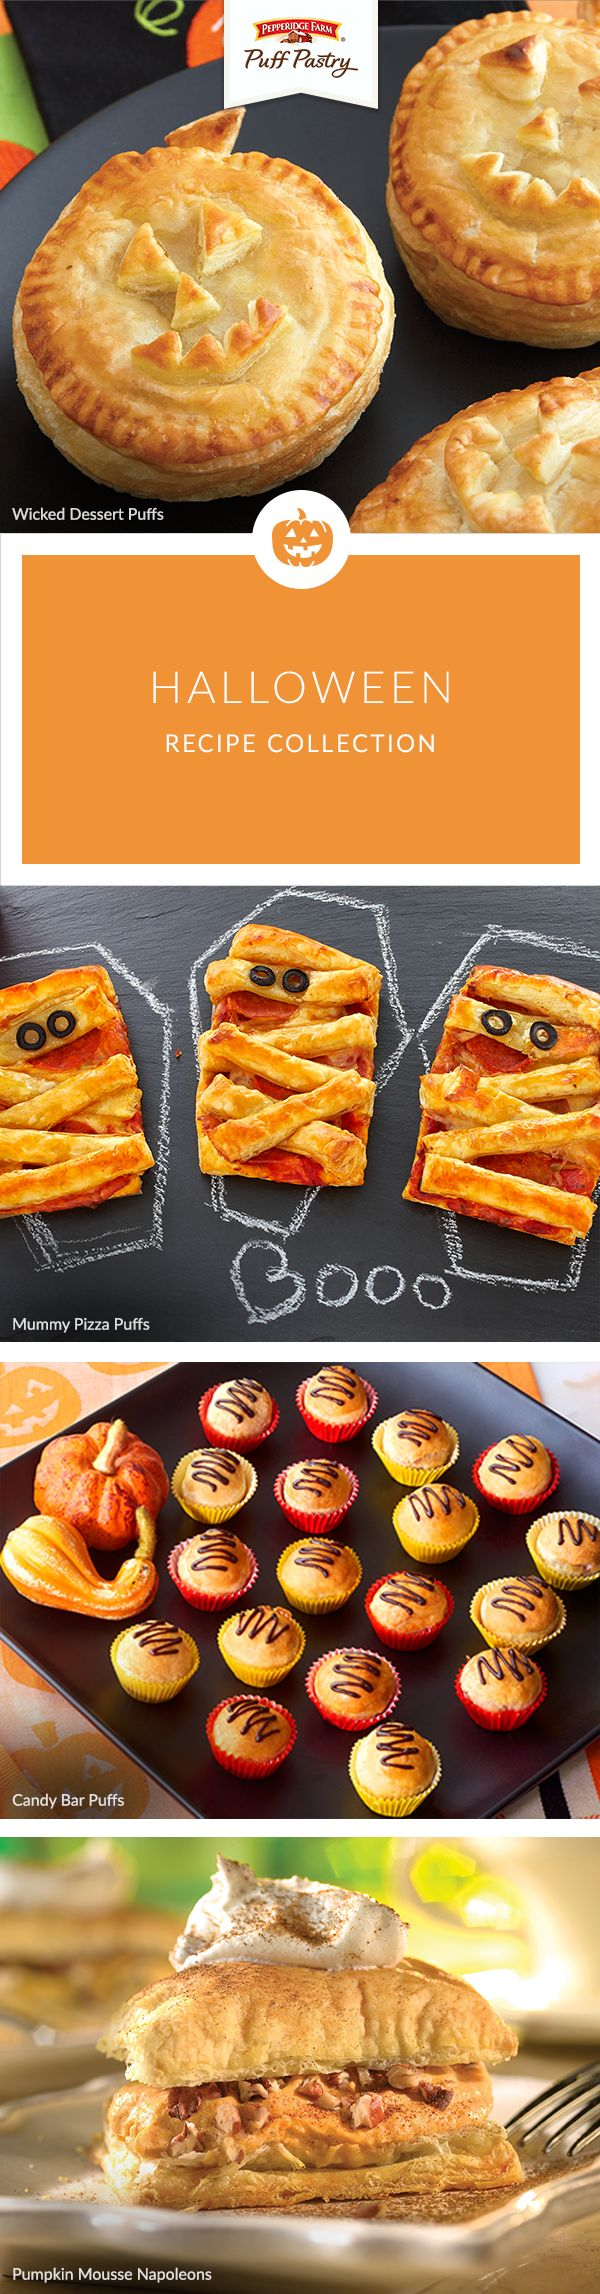 Scare up some fun with these spook-tacular Puff Pastry Halloween recipes. Party guests will have a frighteningly good time devouring Wicked Dessert Puffs, kids will love Mummy Pizzas before trick-or-treating and don't miss the recipe for Candy Bar Puffs (perfect for those leftover bags of candy!)